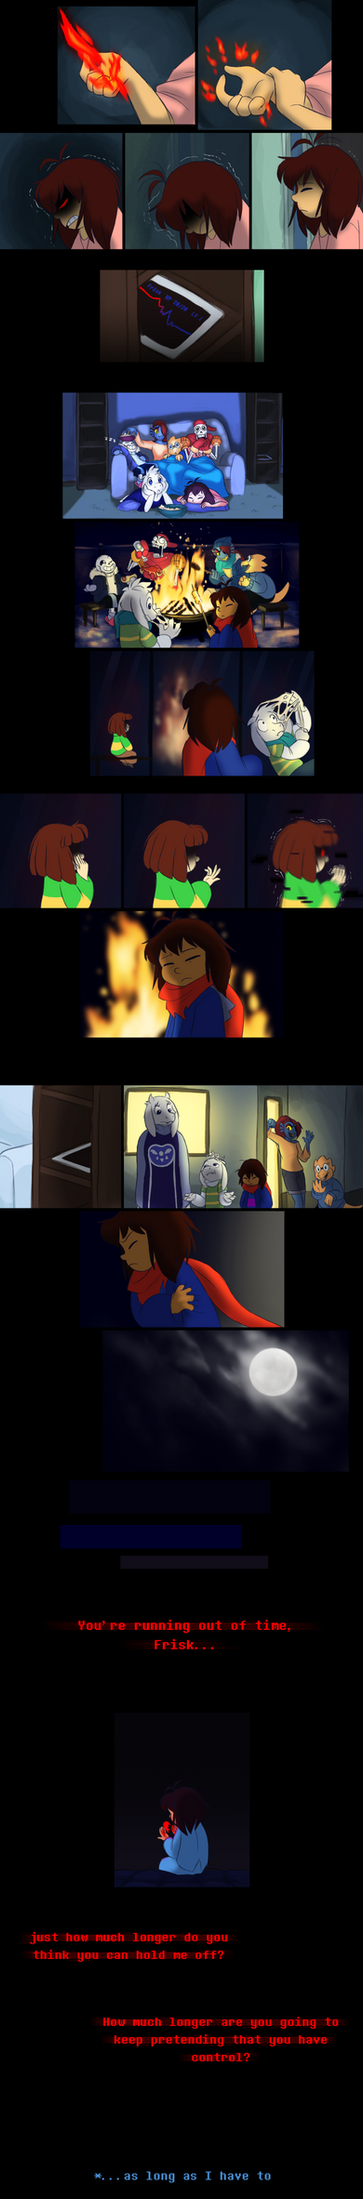 Endertale - Page 19 by TC-96